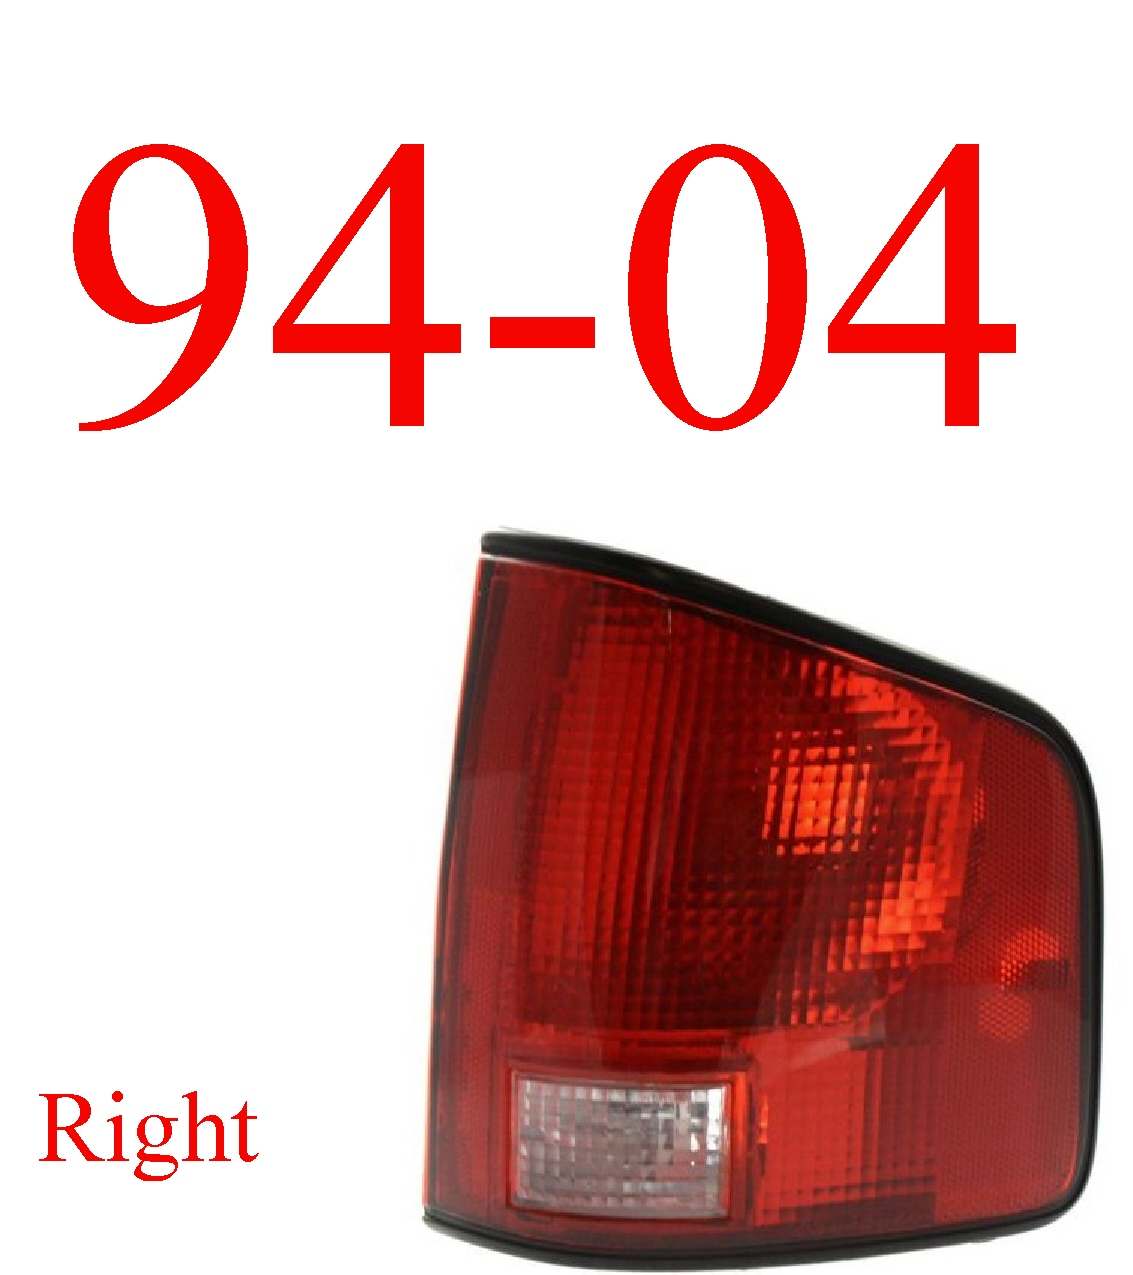 94-04 S10 Right Tail Light Assembly